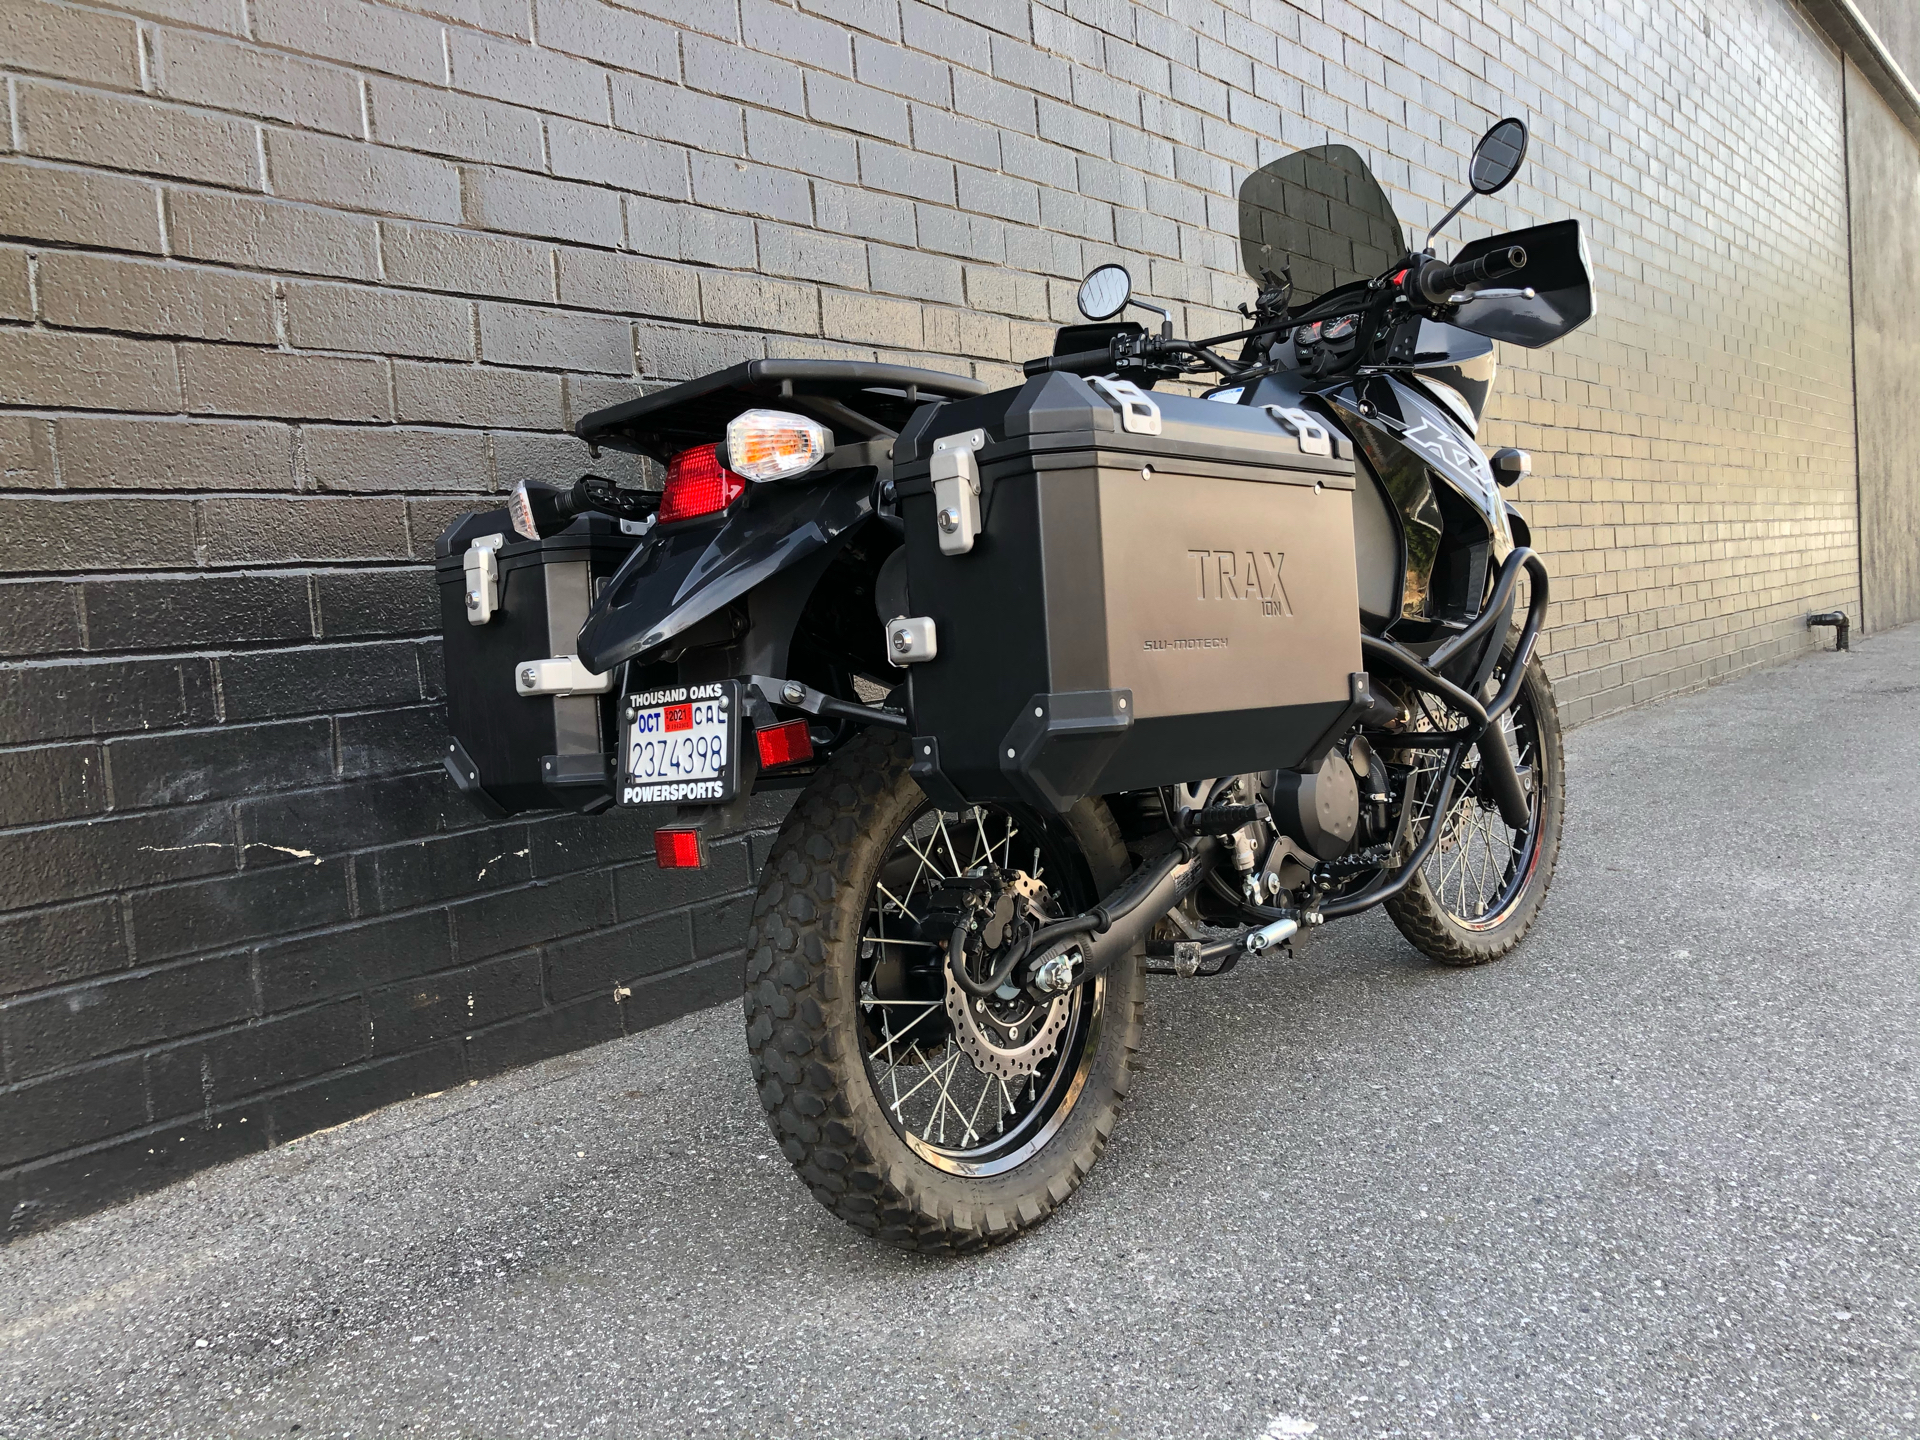 2018 Kawasaki KLR 650 in San Jose, California - Photo 3